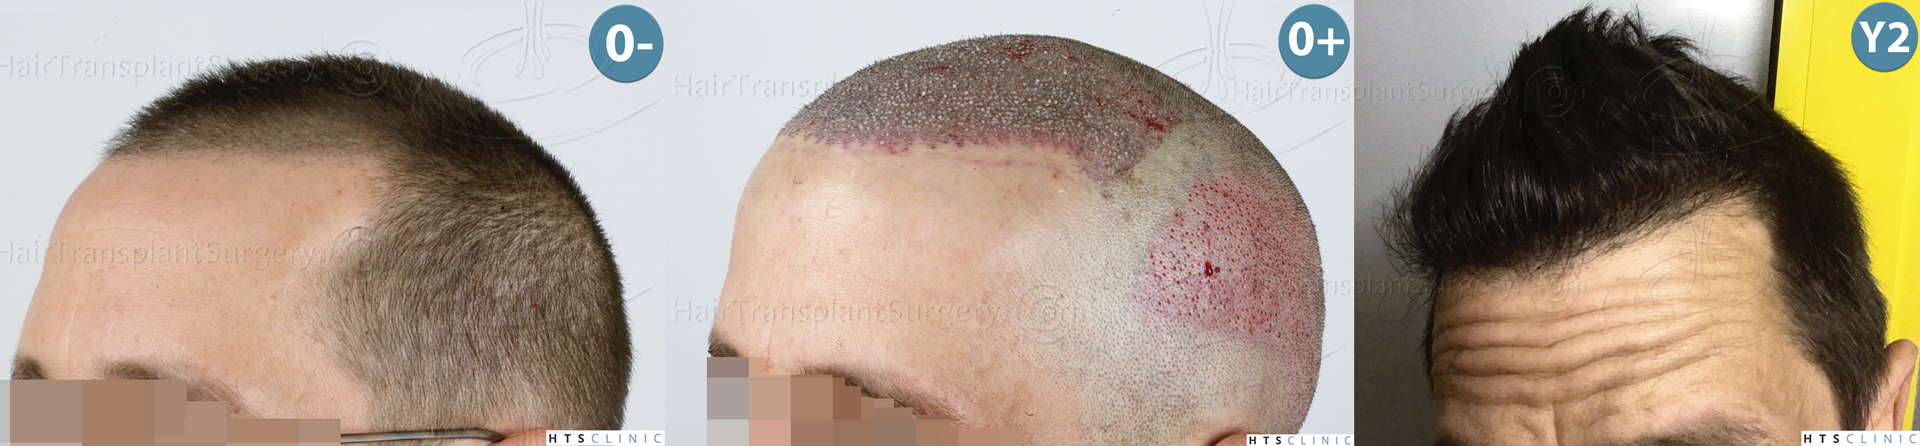 Dr.Devroye-HTS-Clinic-2950-FUE-NW-III-Montage-3.jpg